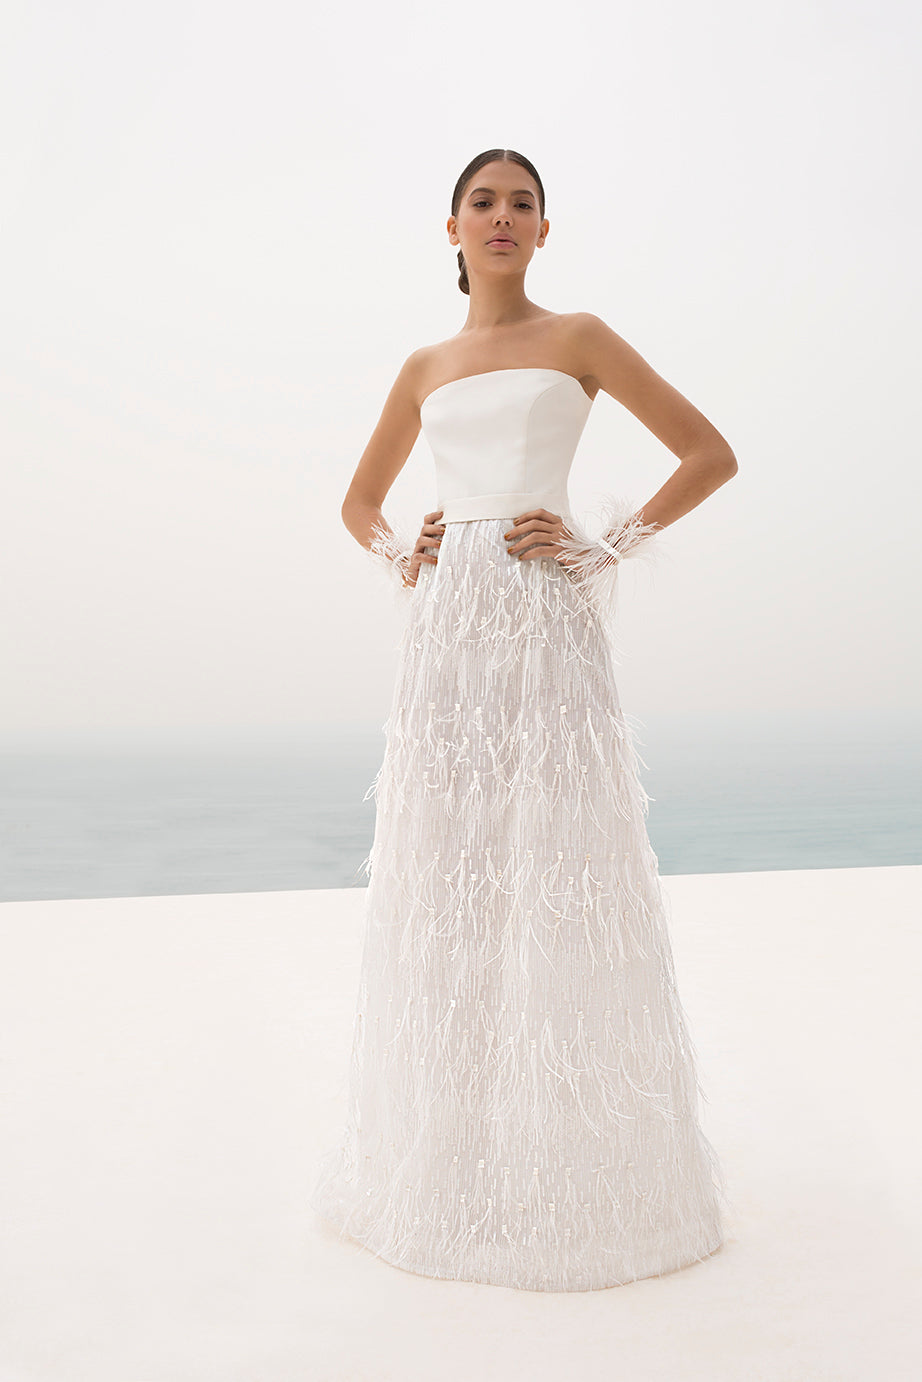 SATEN MAT CREP ELASTIC BODICE WEDDING DRESS WITH TULLE ELASTIC SLEEVES AND SPARKLES WITH FEATHERS